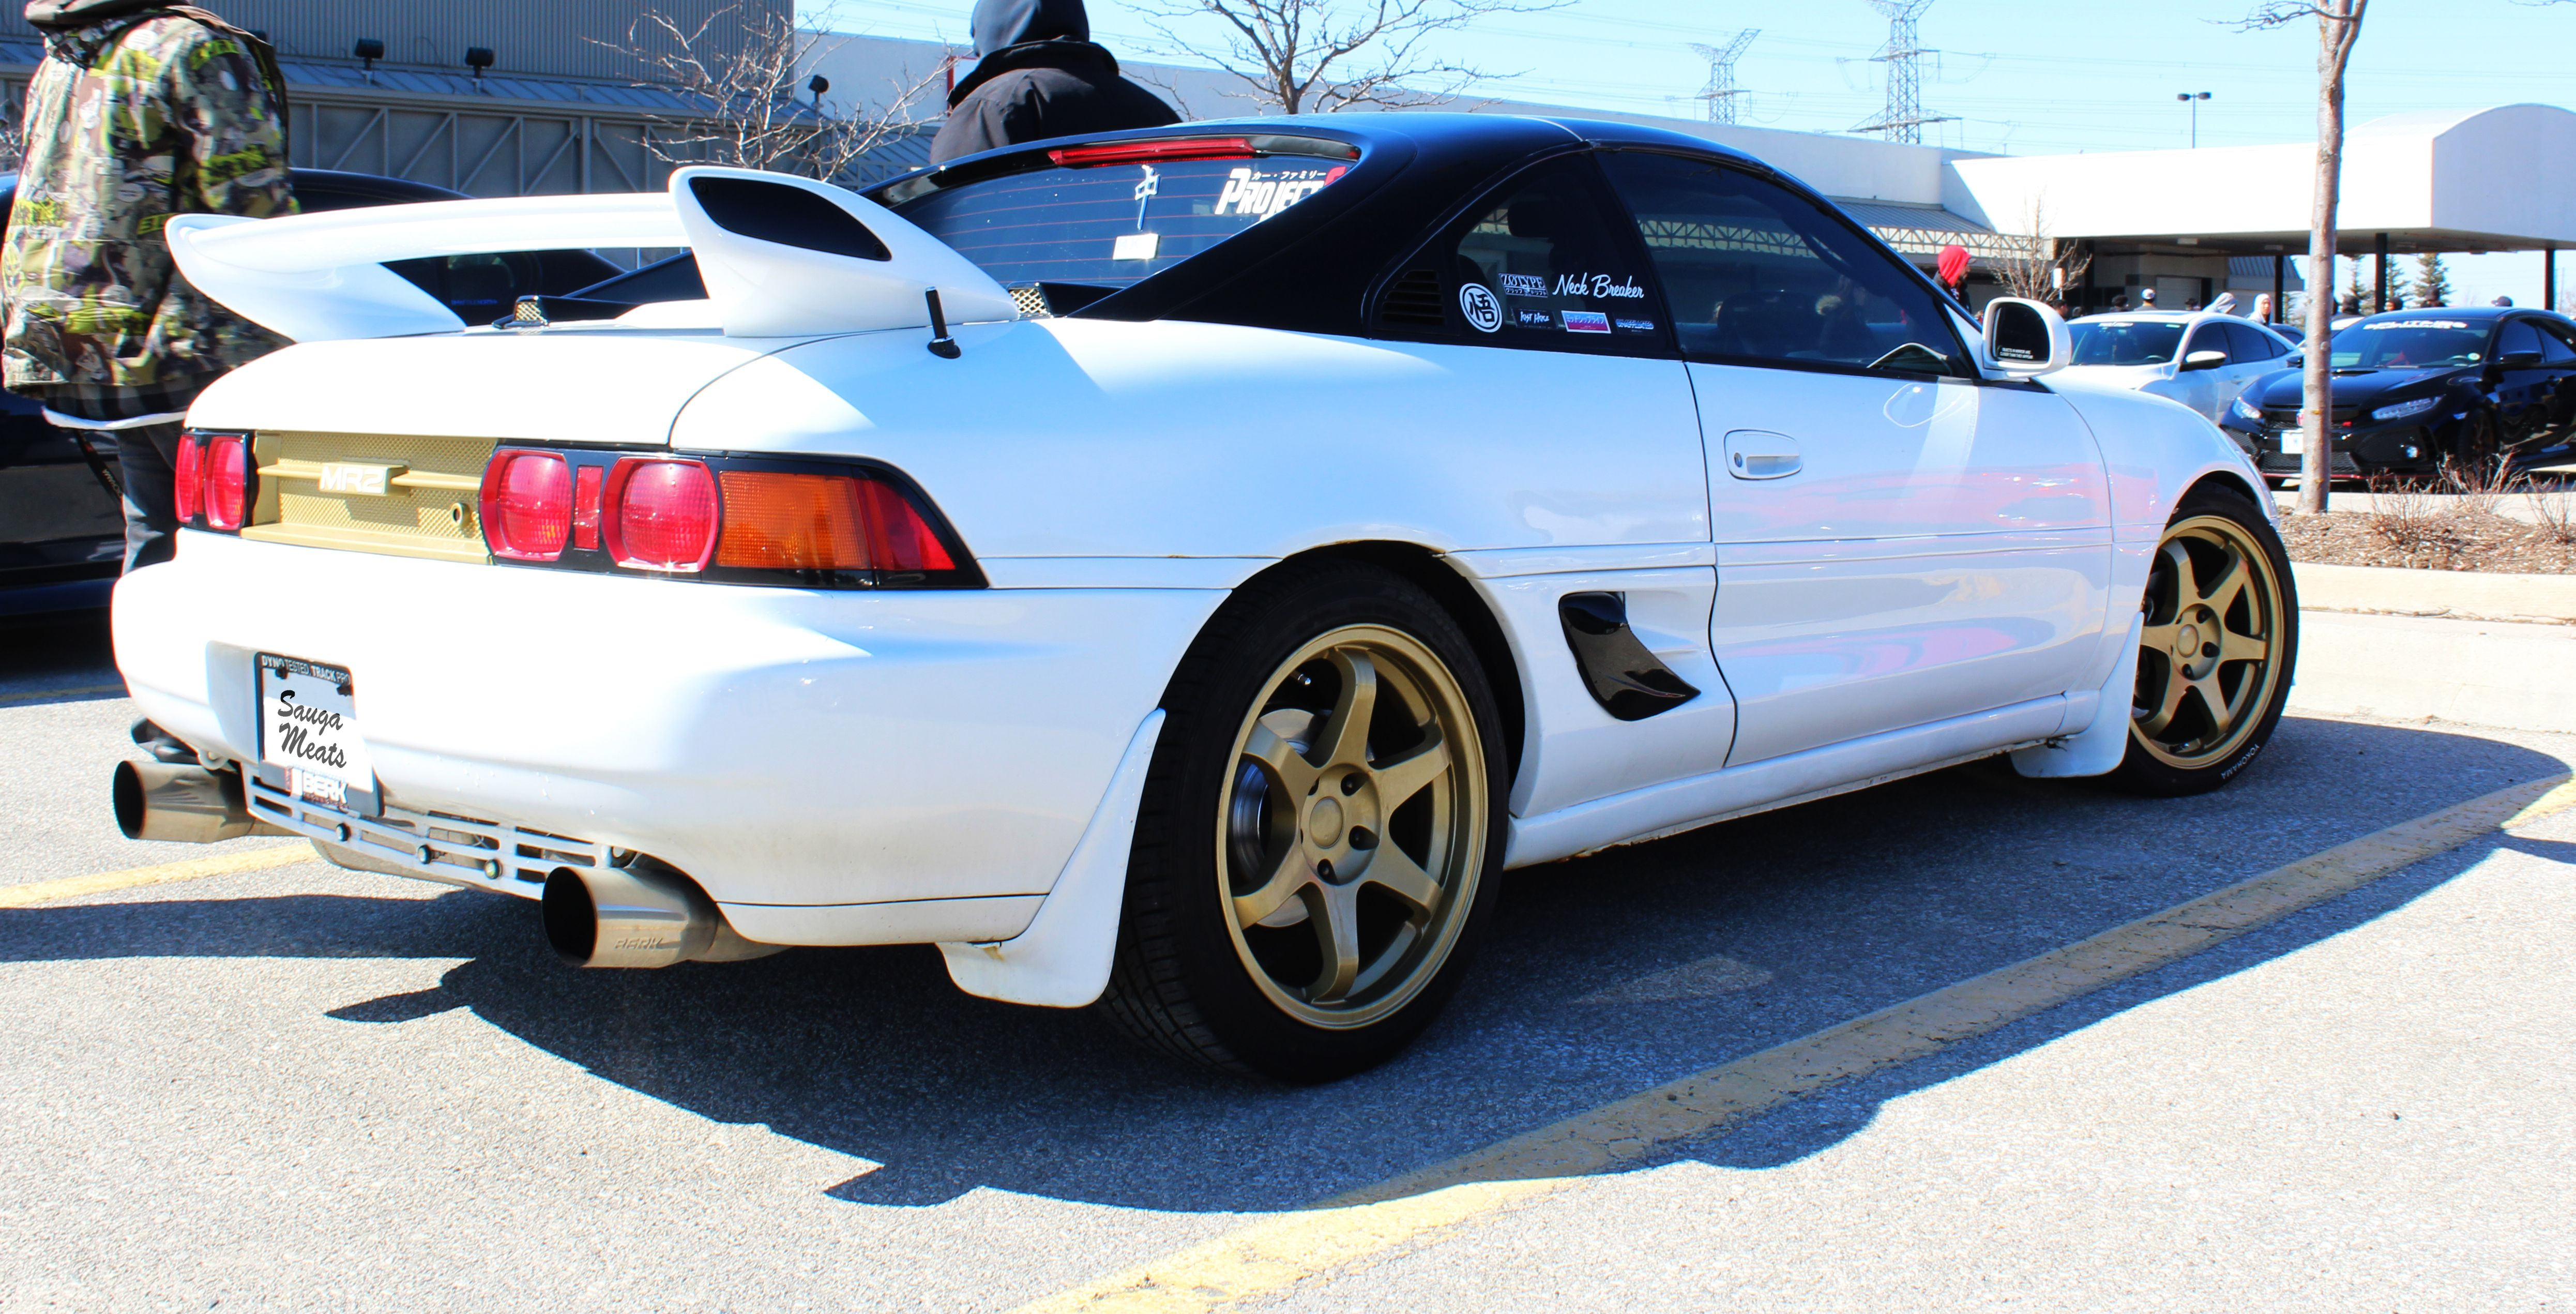 Toyota Mr2 White Body With Gold Wheels Is One Of The Sweetest